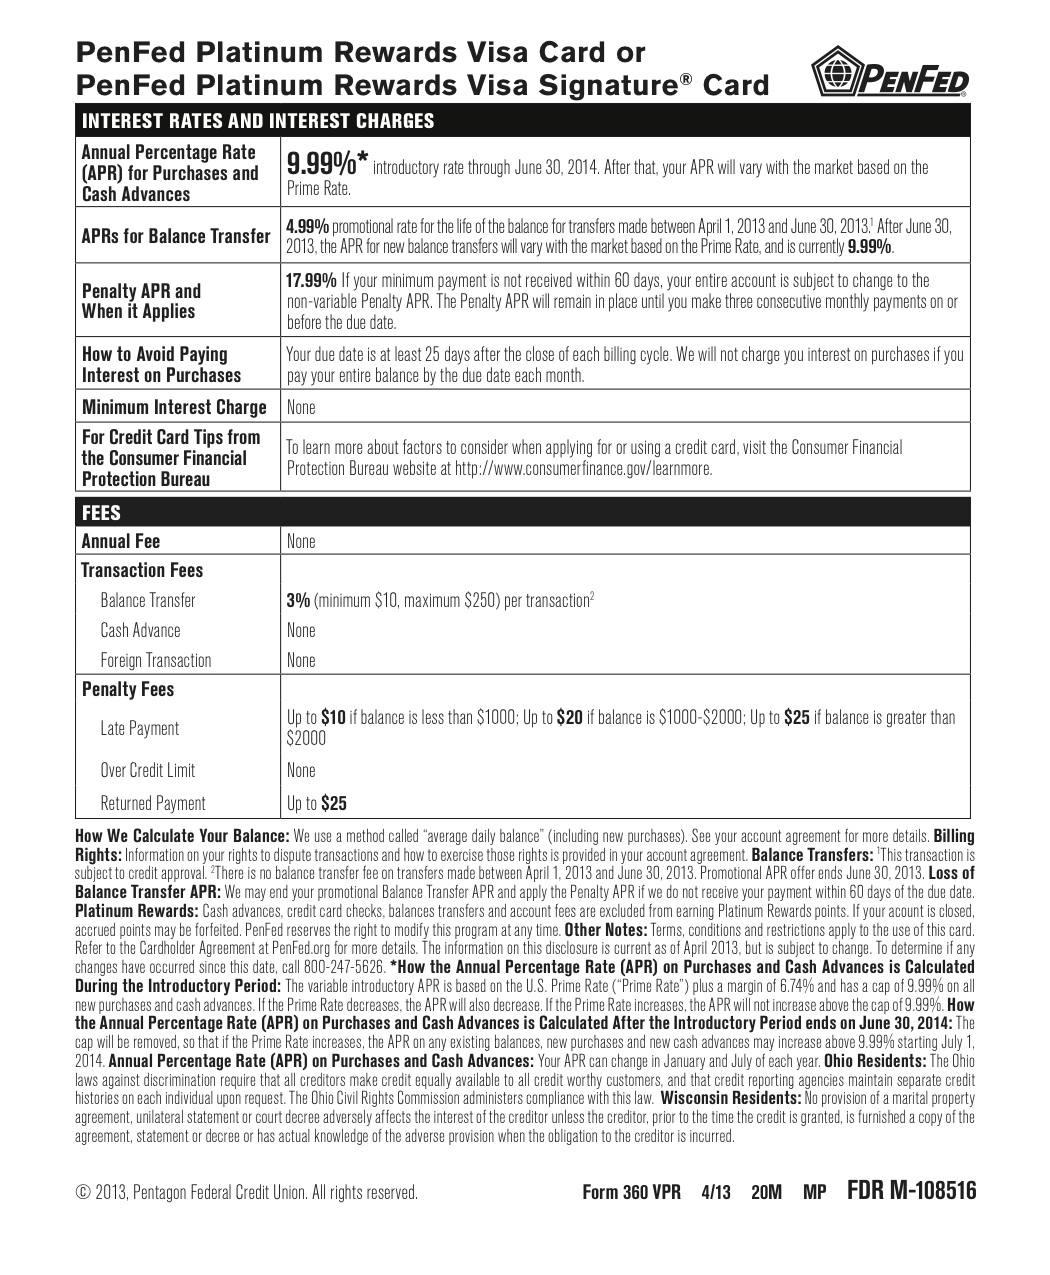 Form360-Visa-Platinum-Points-Summary-of-terms-Web-1.jpg